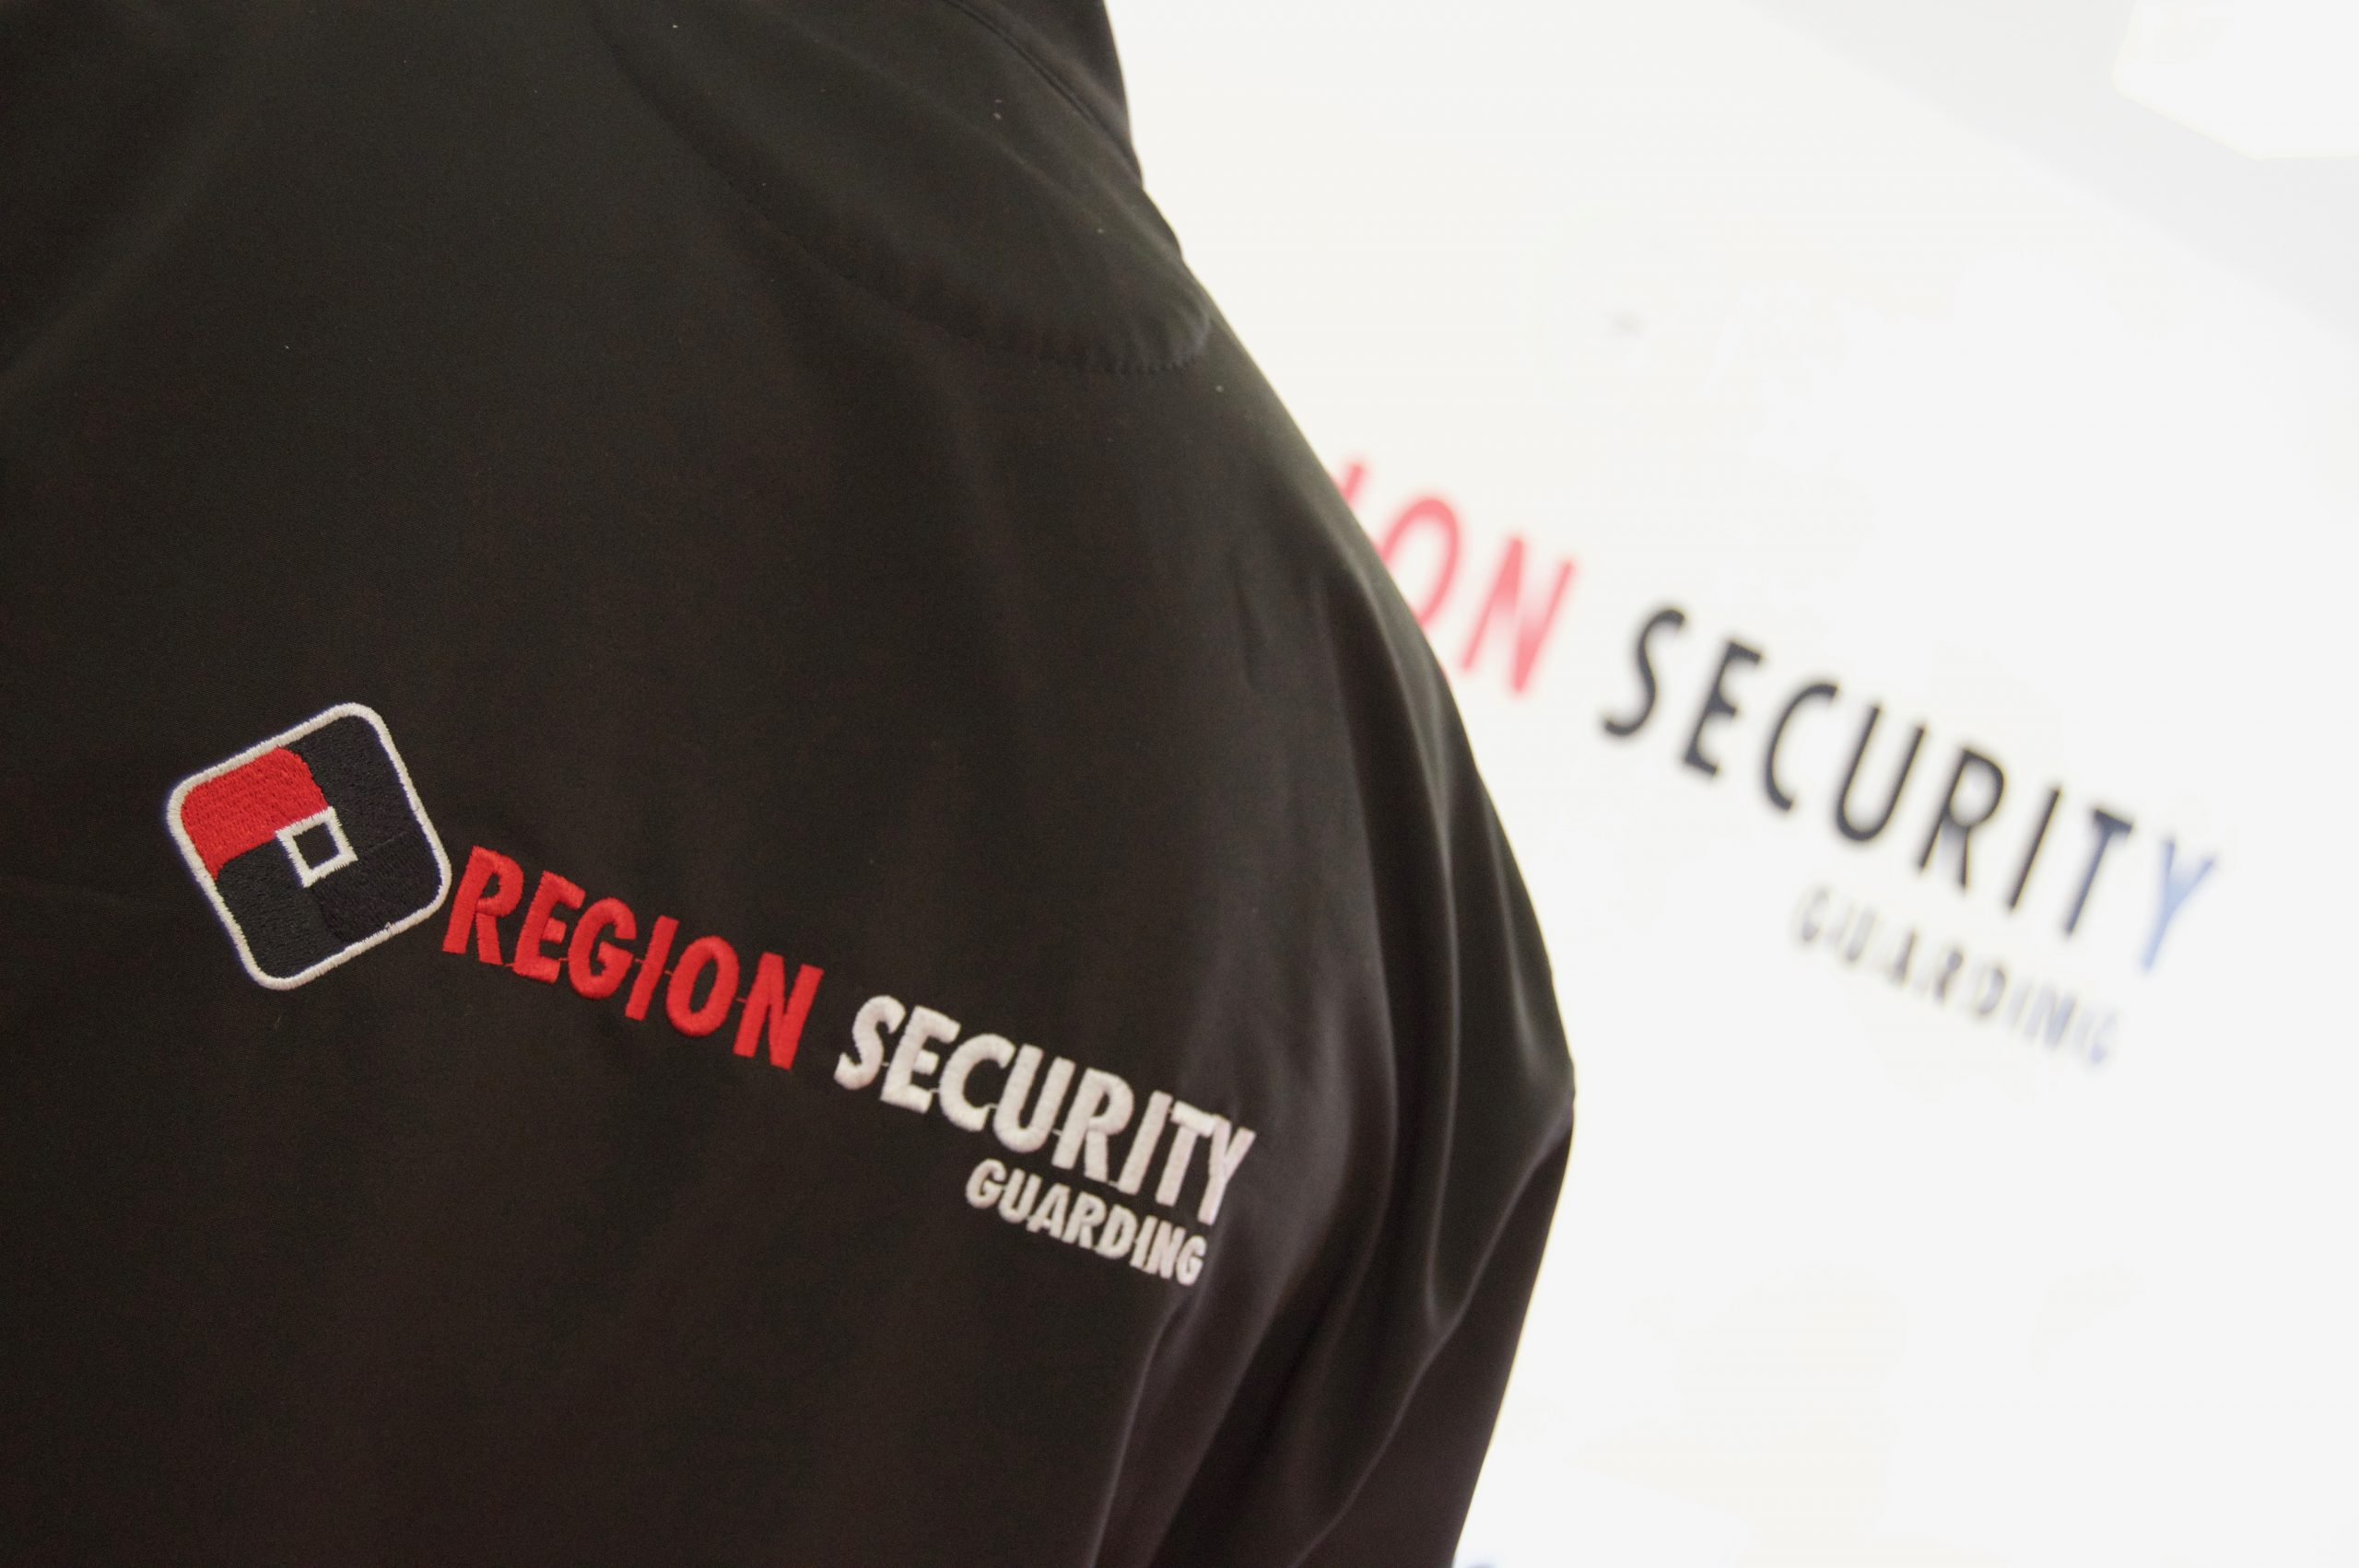 jewellers security guard services